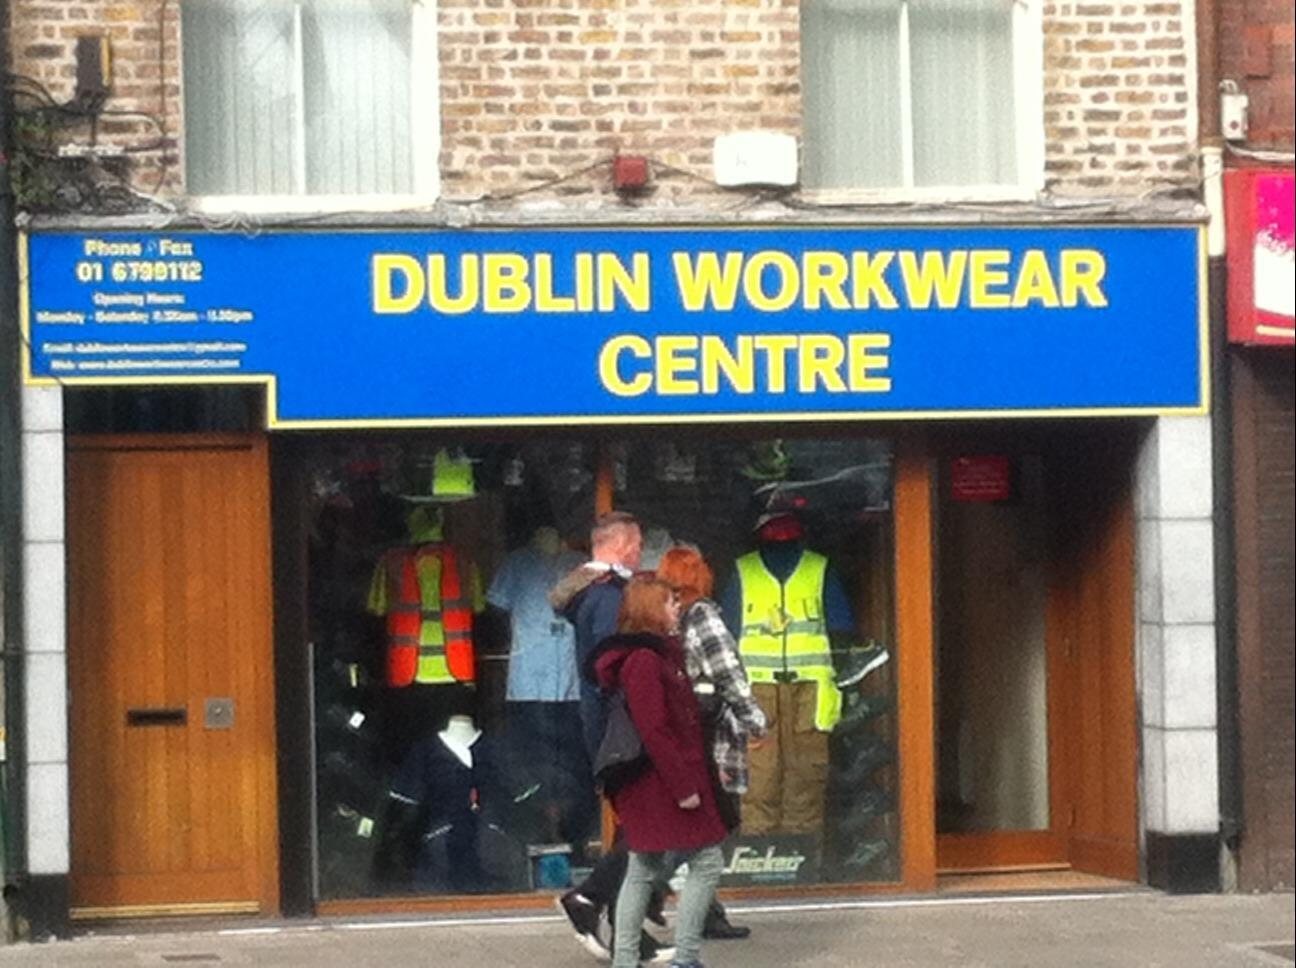 Dublin Workwear Centre 2